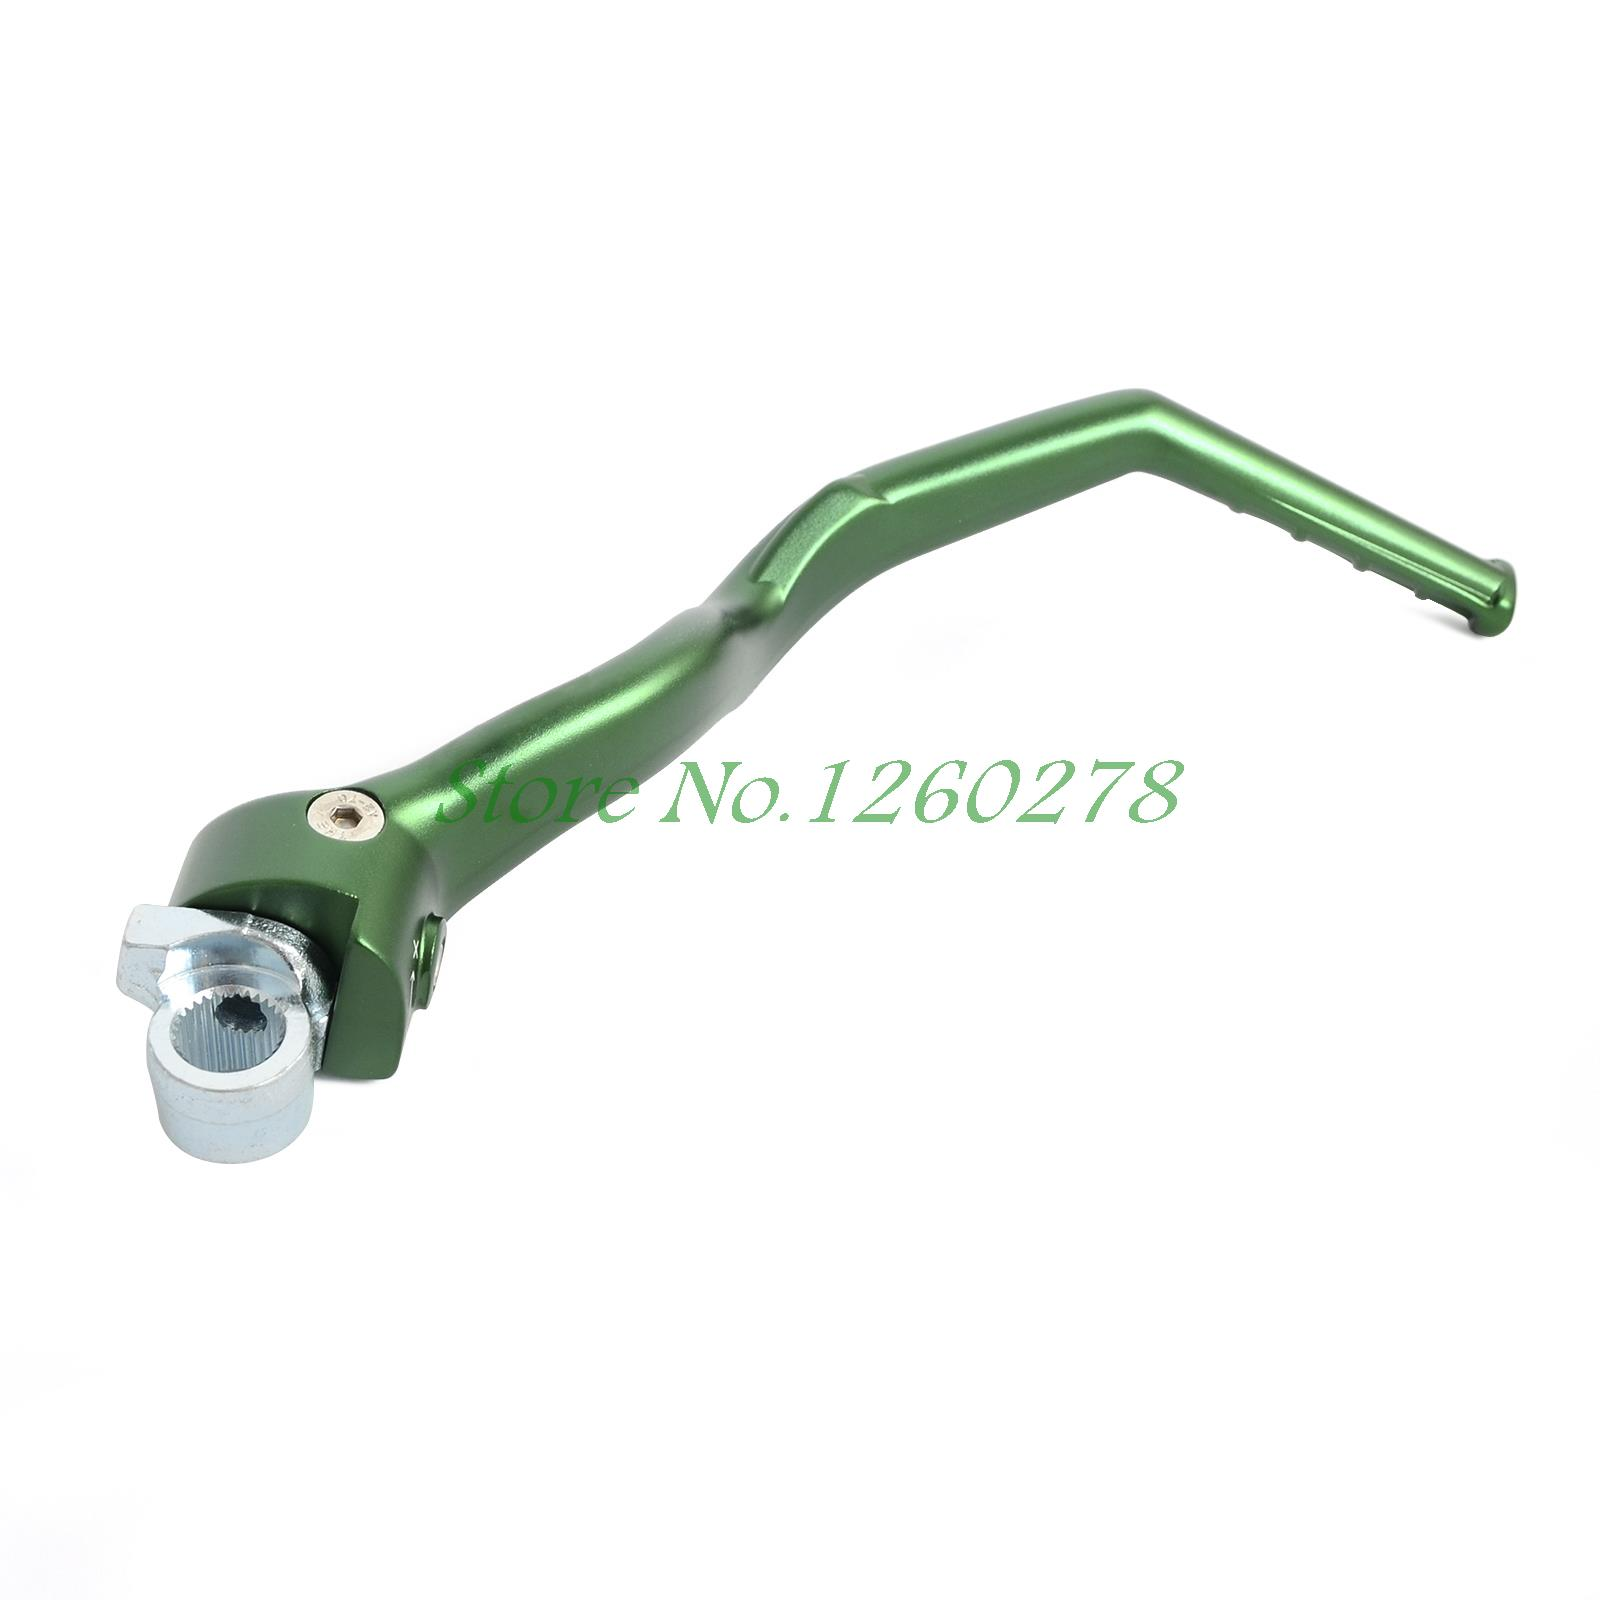 Motorcycle Forged Kick Start Lever Starter for Kawasaki KX250F KXF250 2013-2016 KX450F KXF450 KXF 250 450 KX 250F 450F купить в Москве 2019